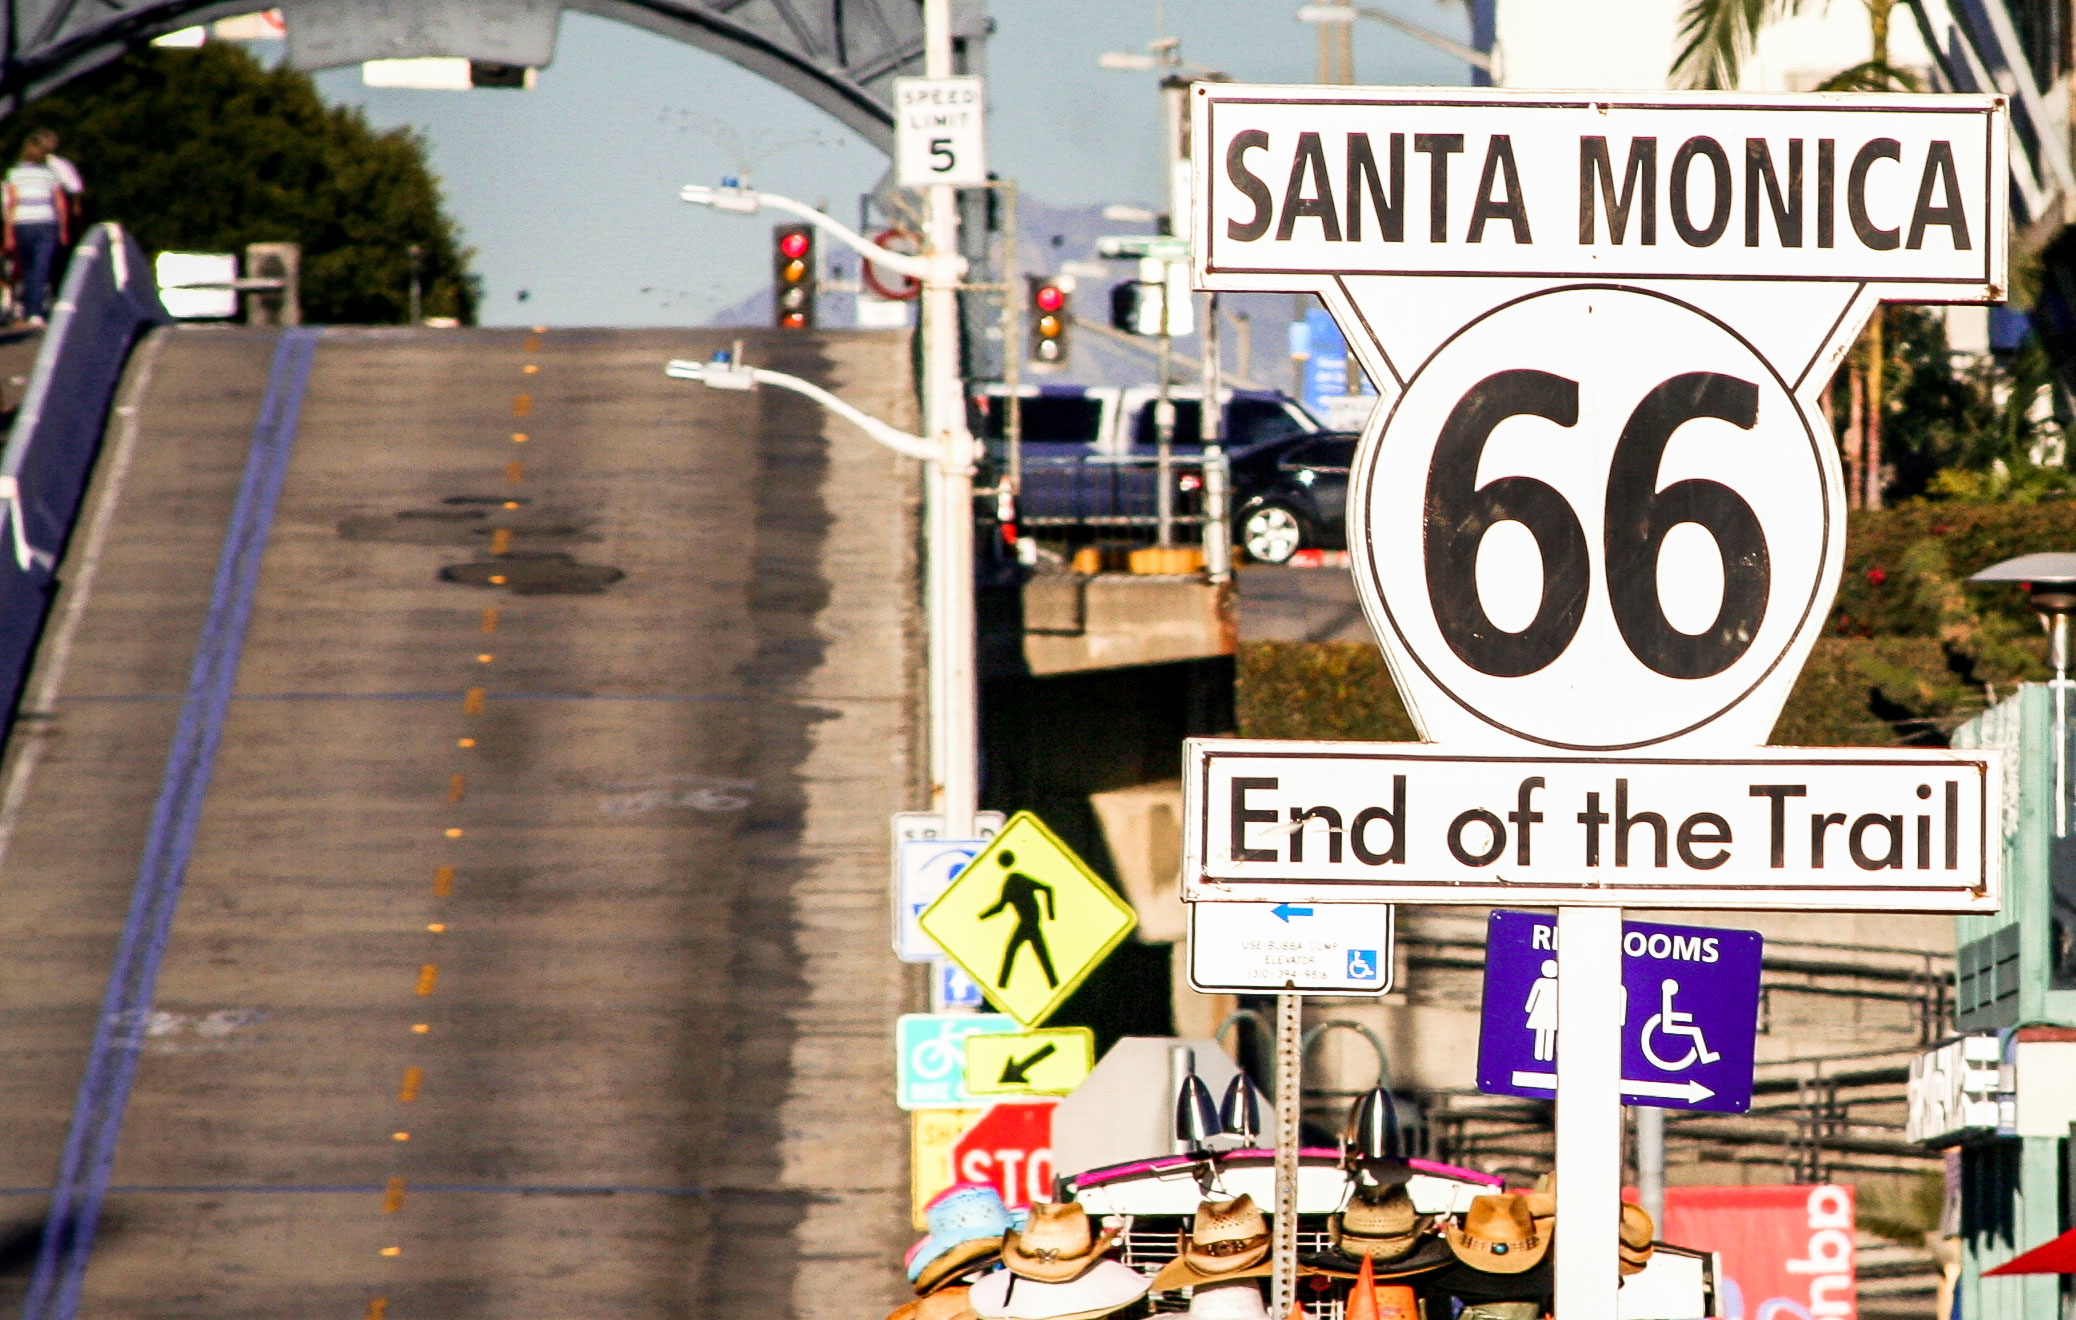 End of the Route 66 in Santa Monica, California